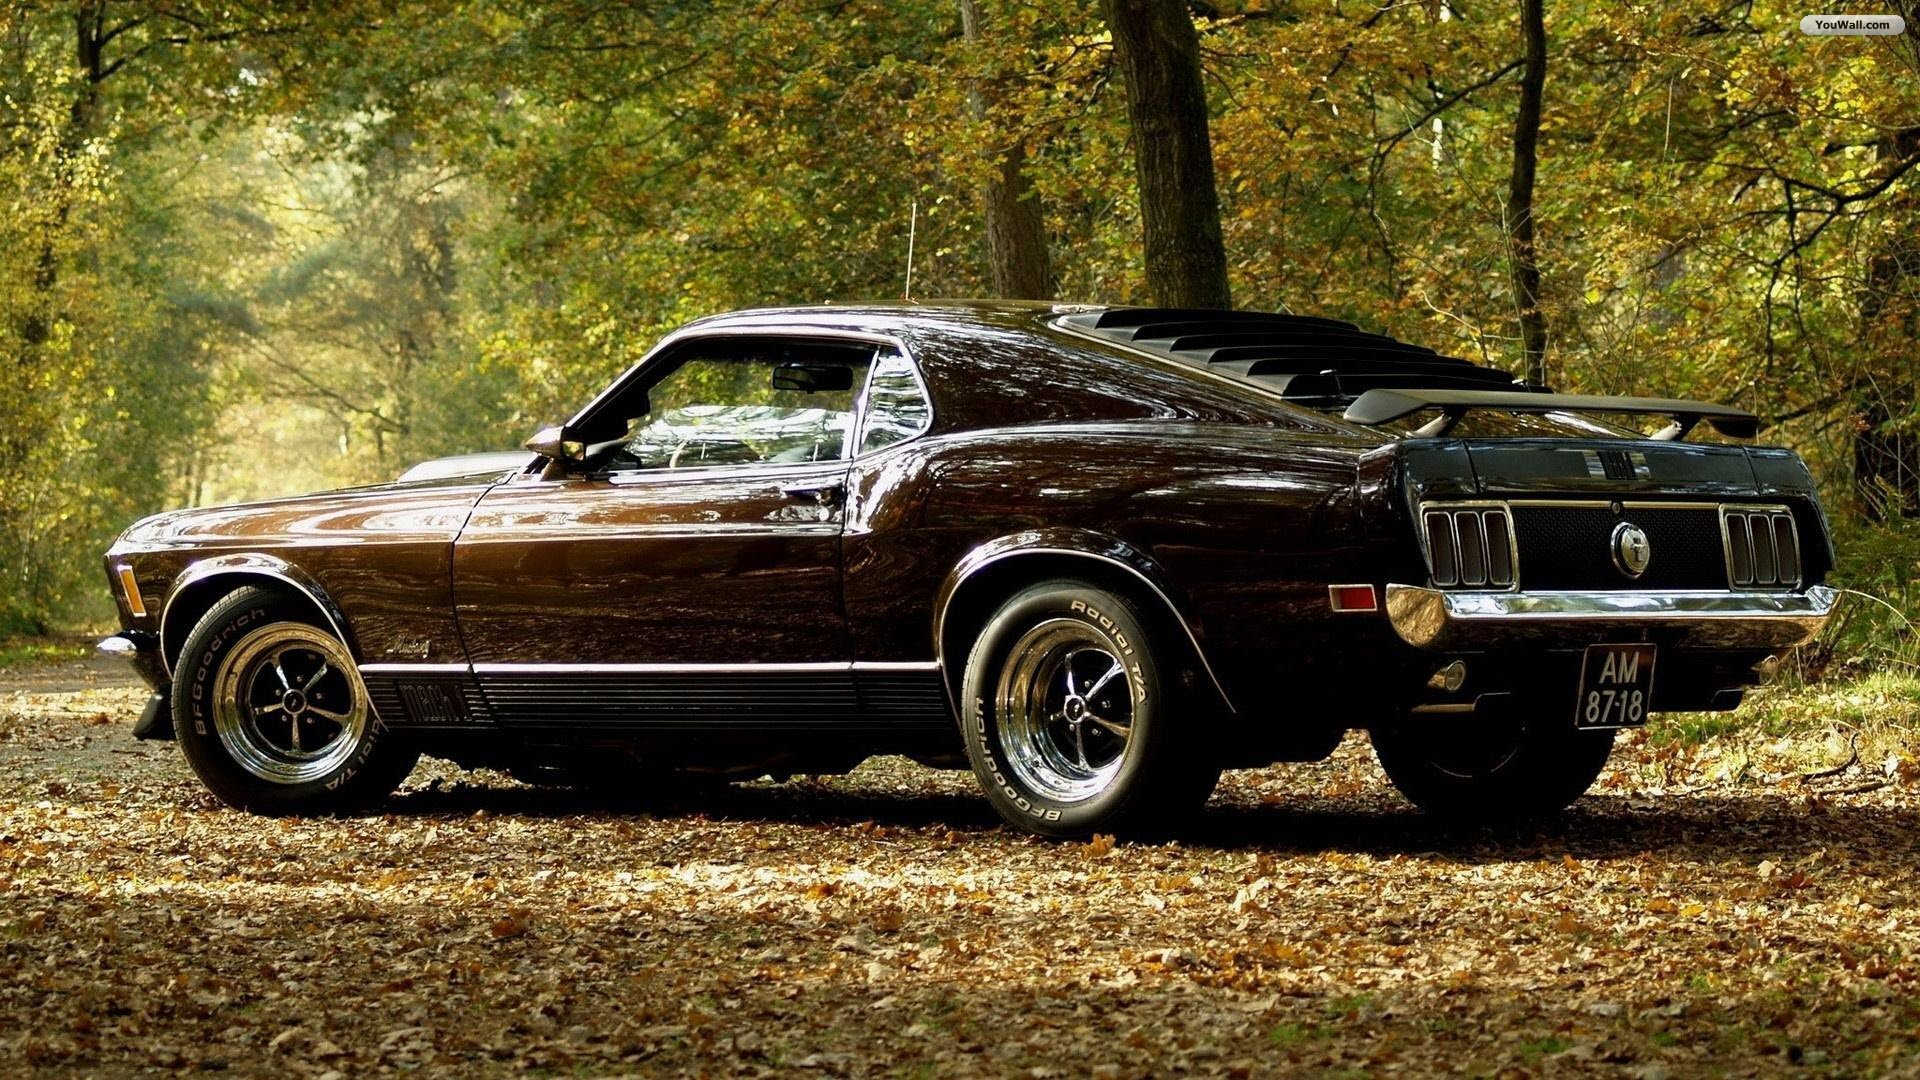 High Resolution Classic Muscle Car Ford Mustang Wallpaper HD 8 1920x1080